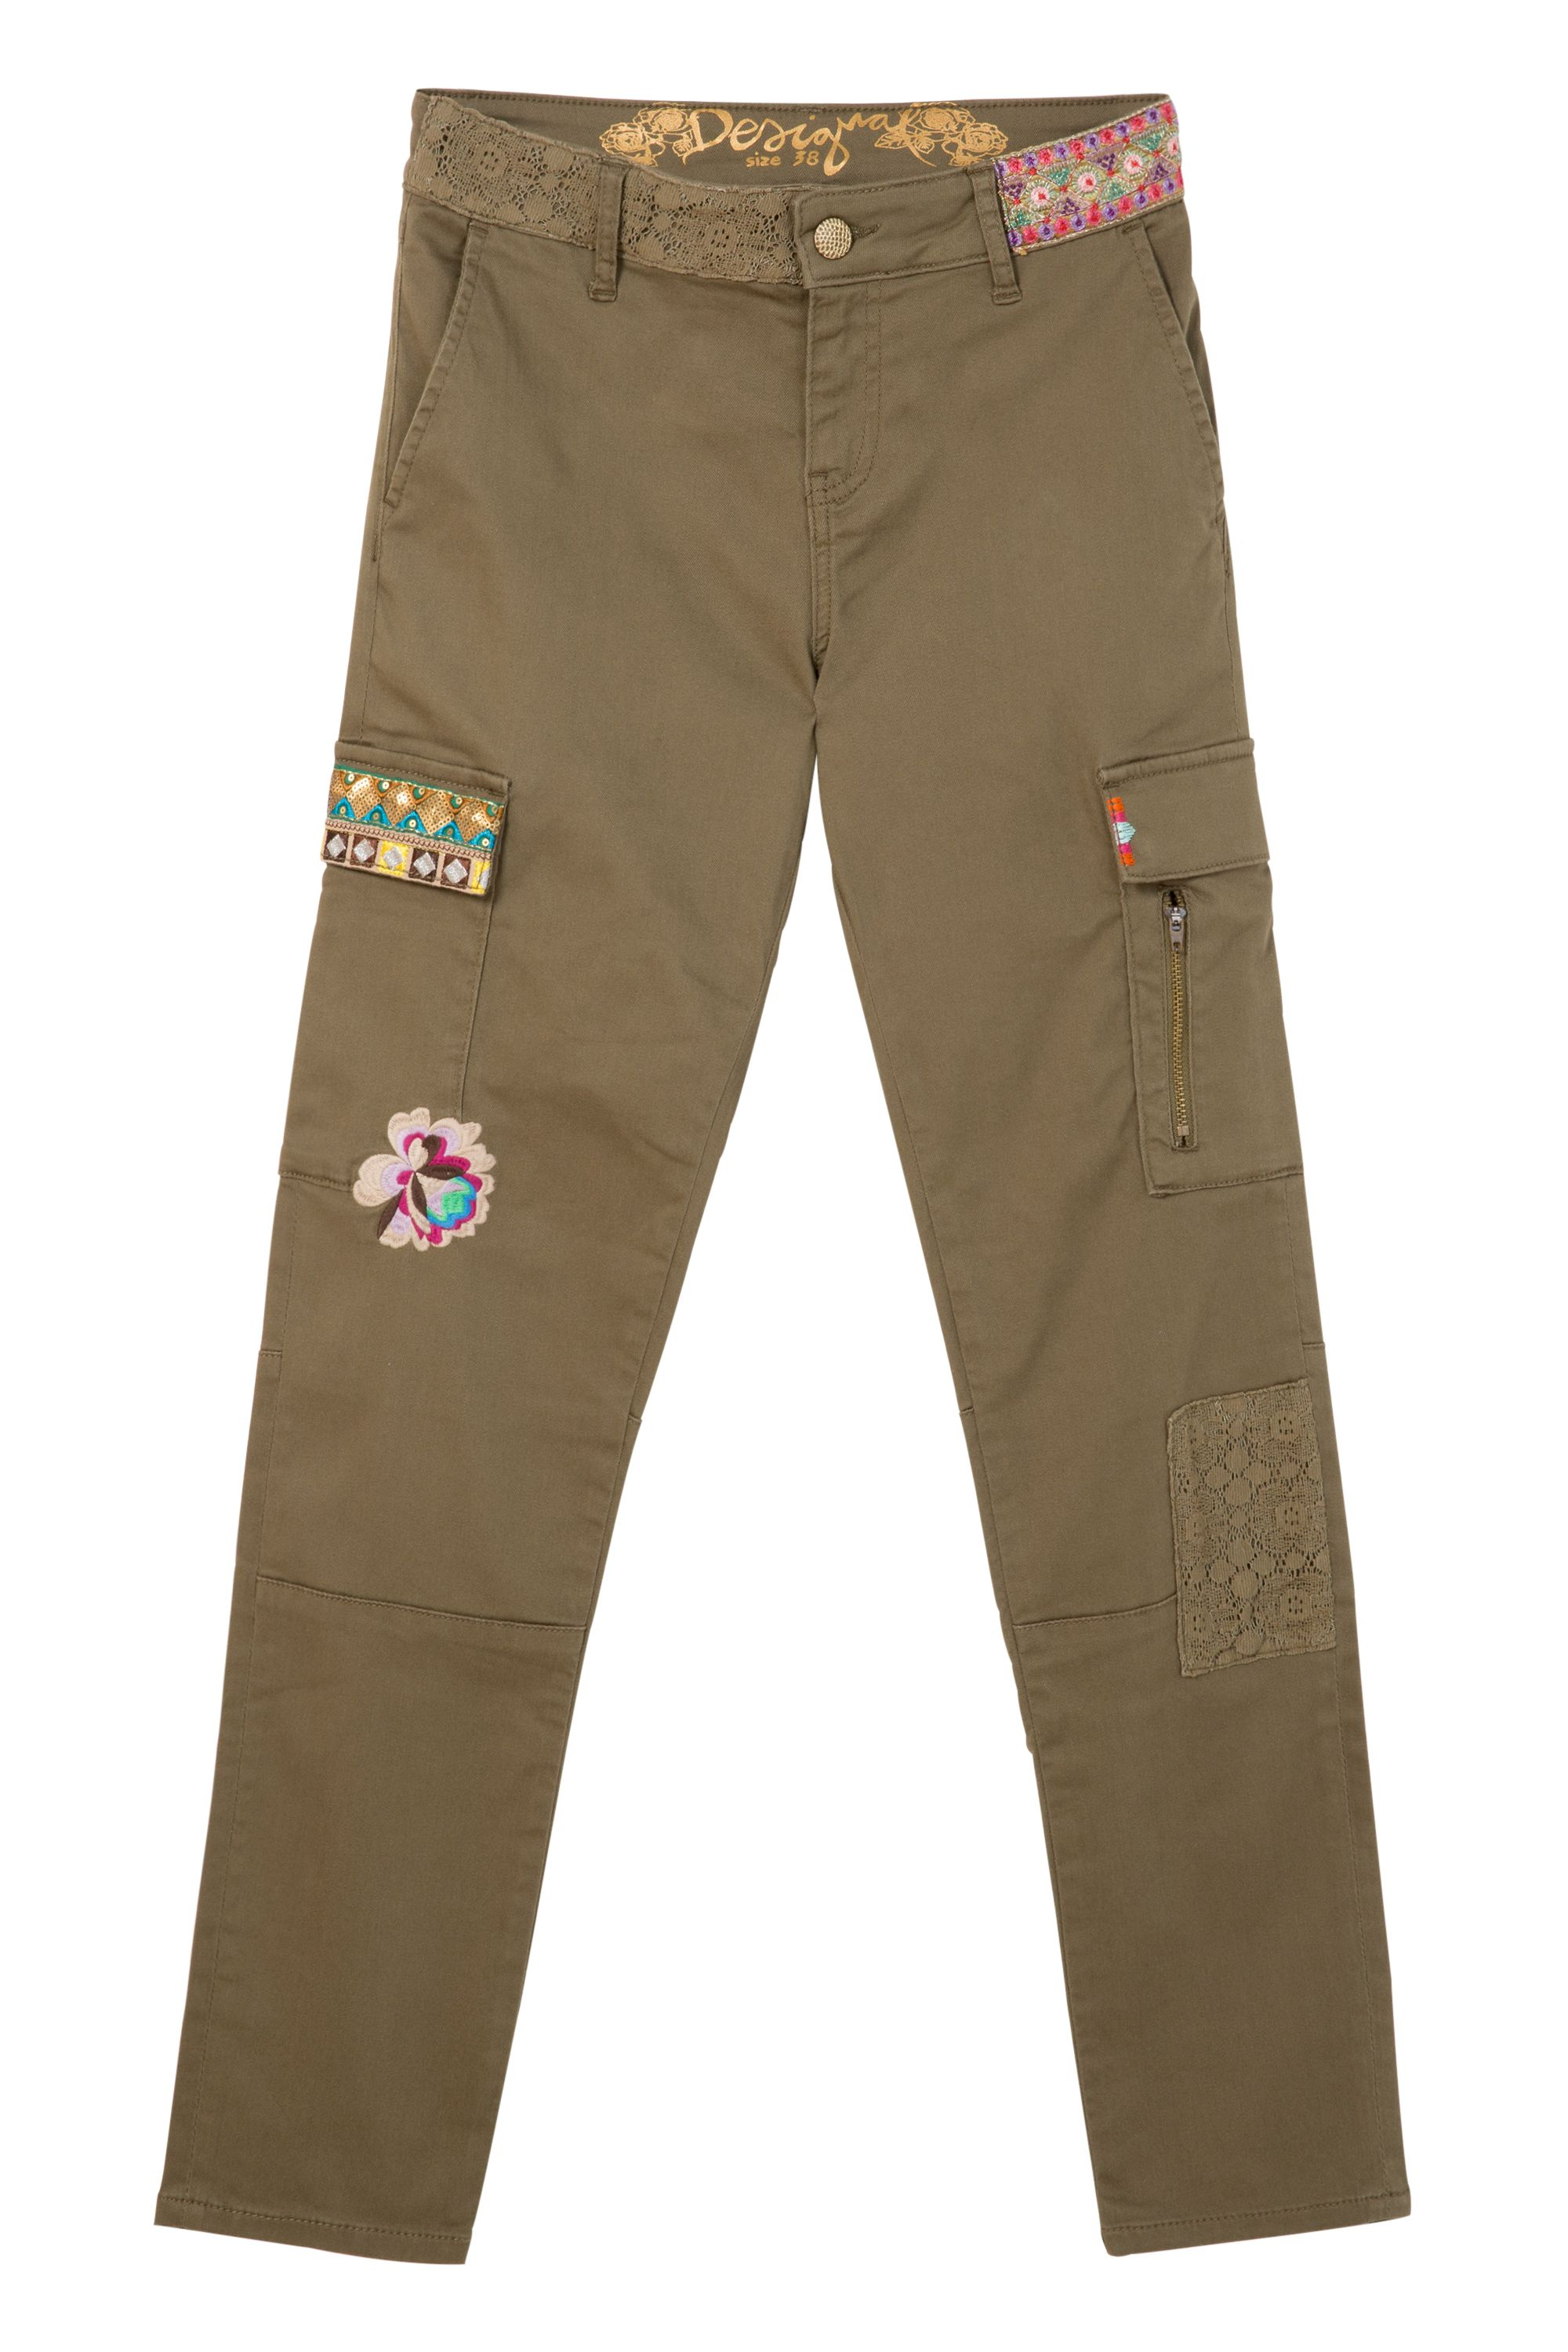 Desigual Trousers Luz, Green